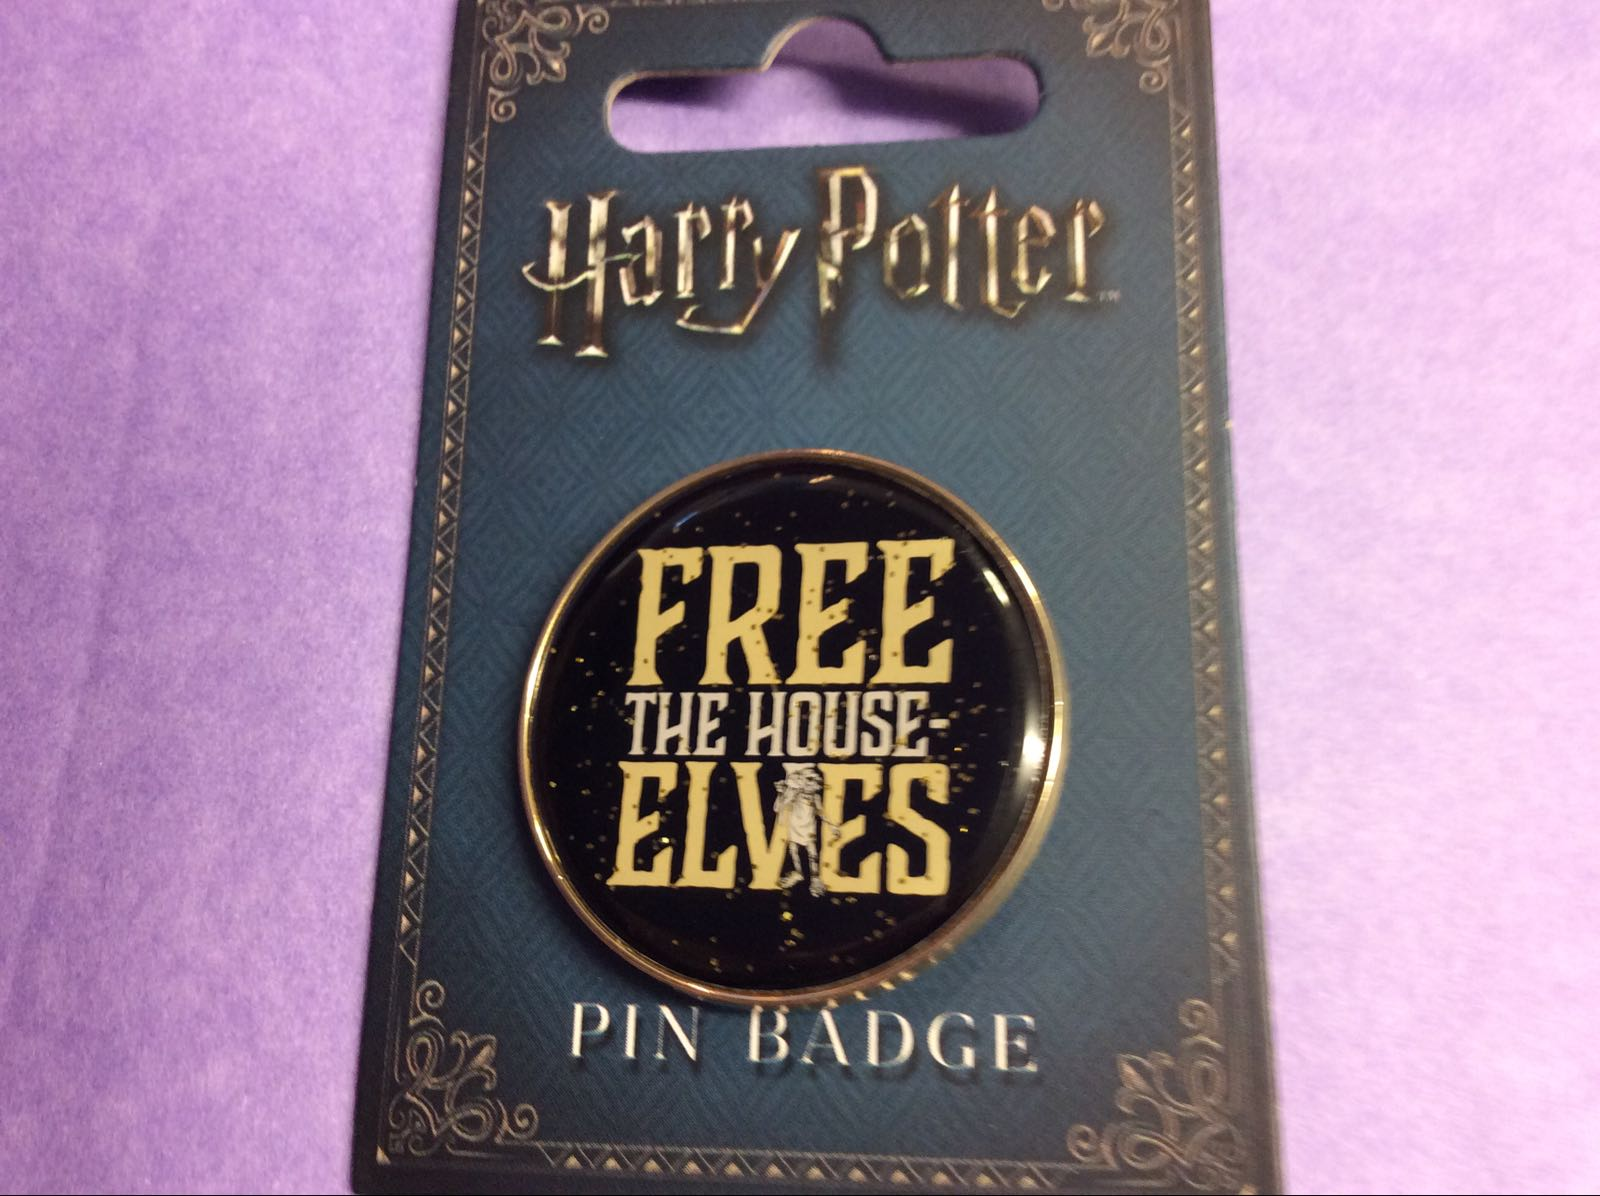 Harry Potter Free The House Elves Pin Badge REDUCED